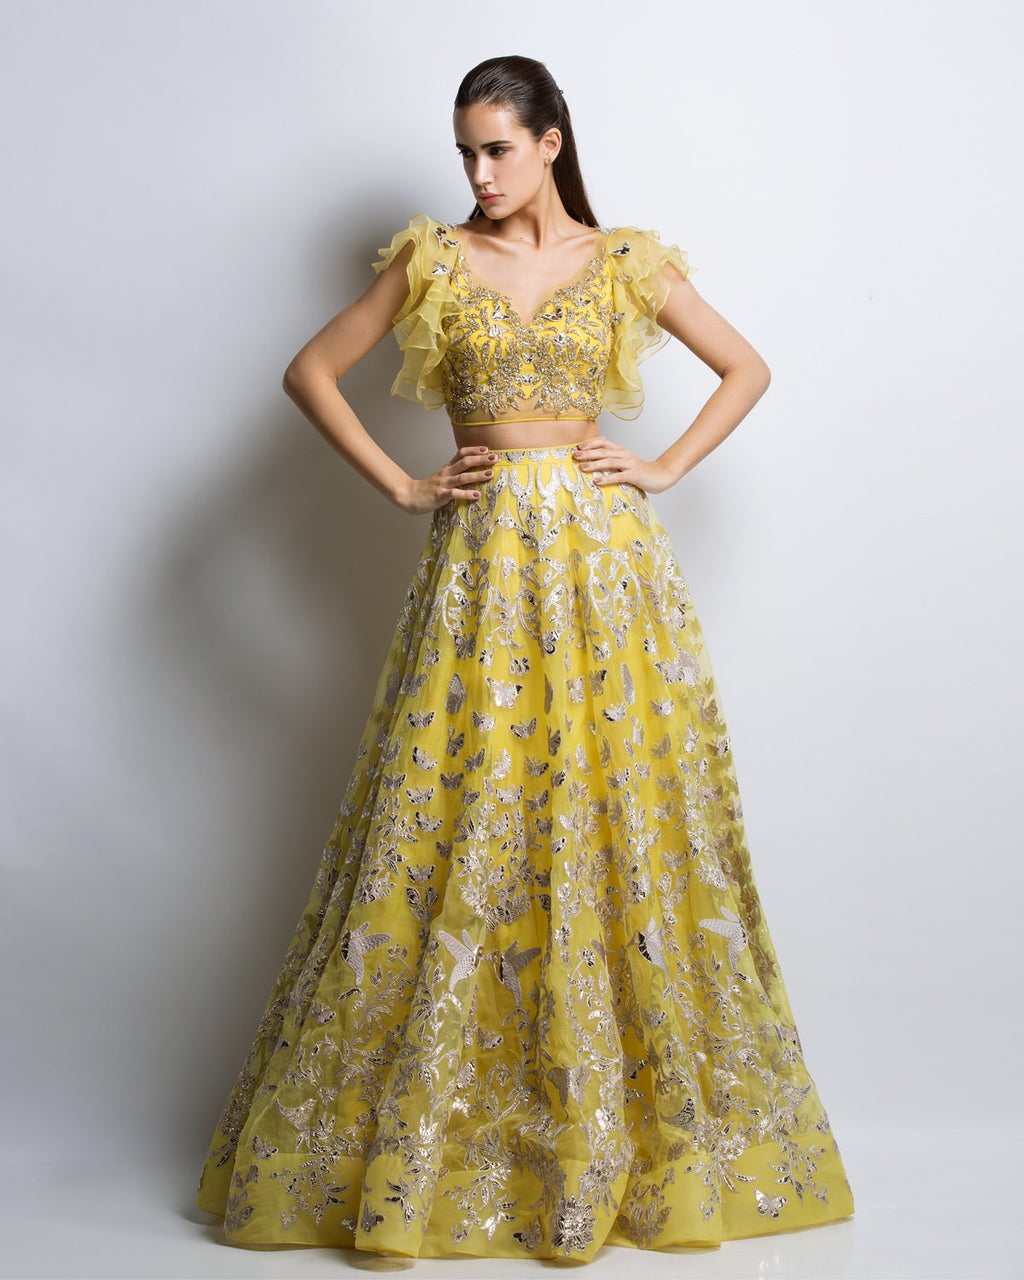 Deme Buttercup Yellow Lehenga